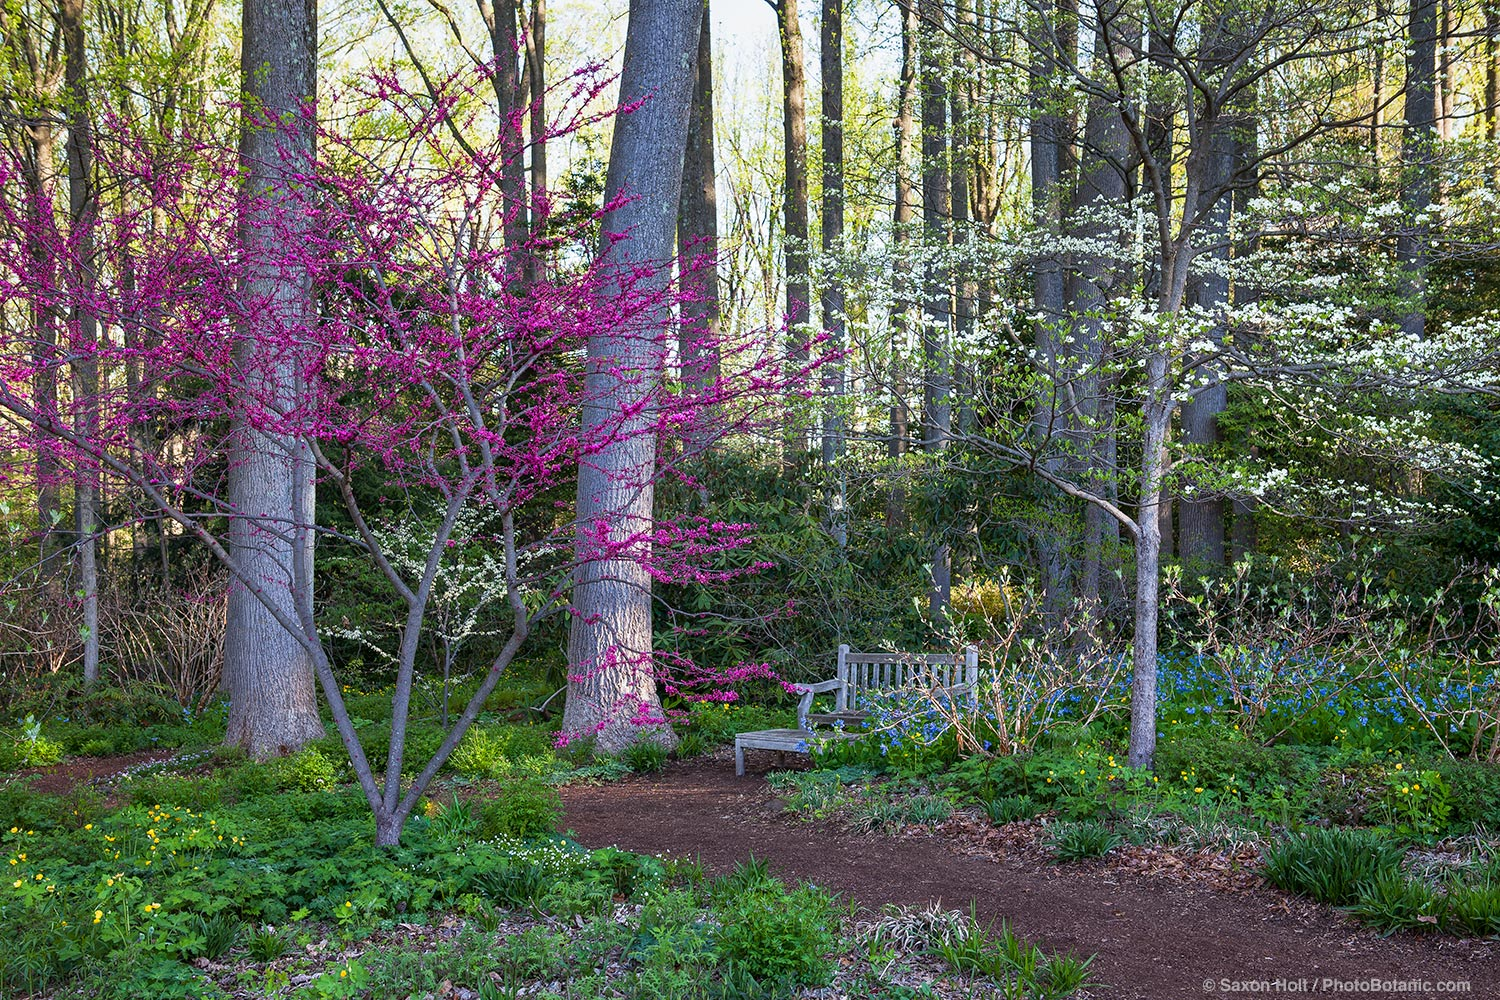 Redbud tree (Cercis canadensis) flowering by pathway to woodland garden of Liriodendron tulipifera -Tulip tree with white flowering dogwoods in spring at Mount Cuba Center